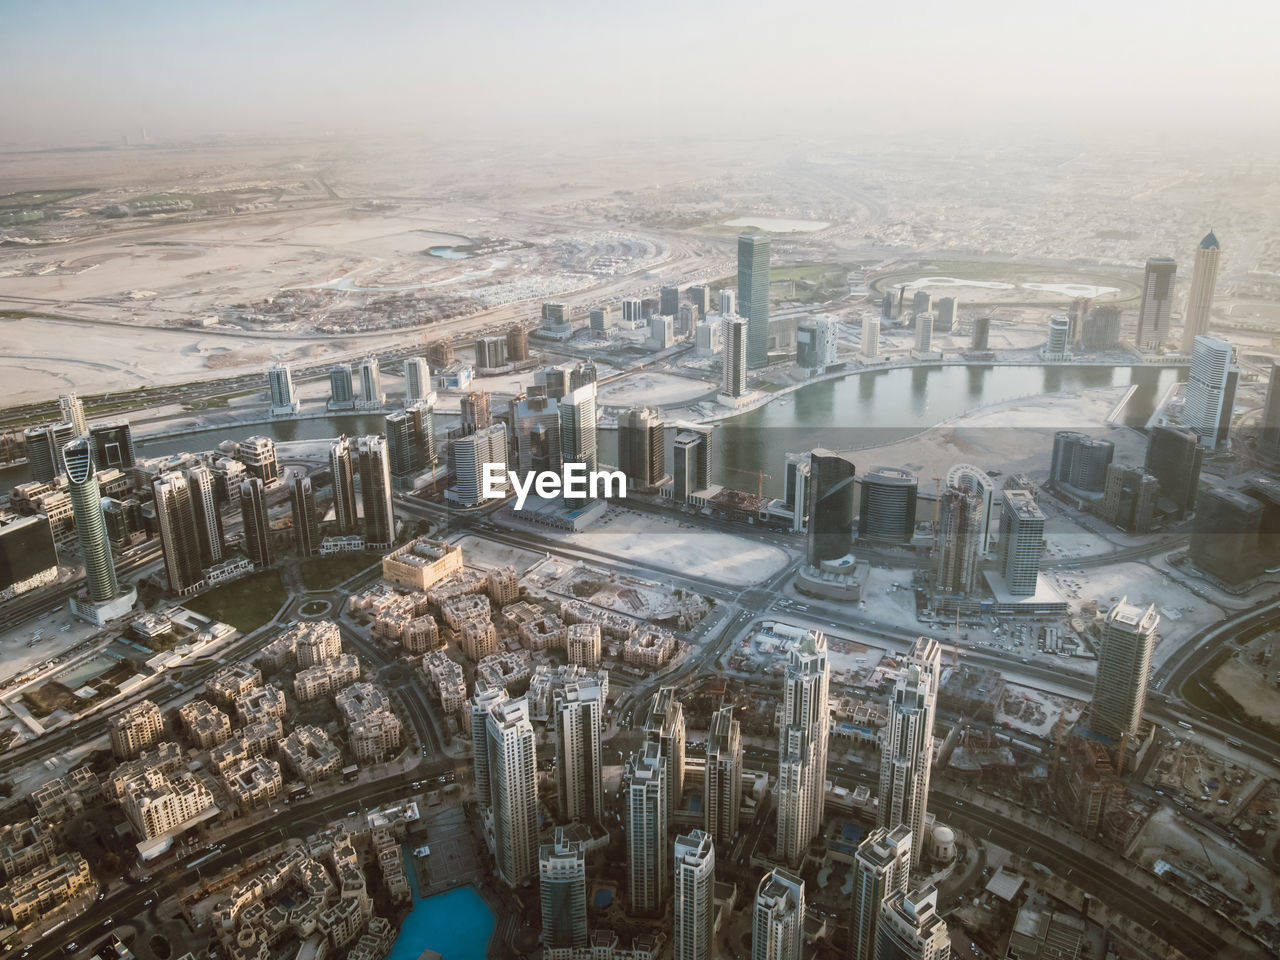 high angle view, architecture, industry, no people, aerial view, built structure, day, nature, factory, building exterior, city, cityscape, outdoors, technology, environment, industrial equipment, sky, fuel and power generation, business, large group of objects, pollution